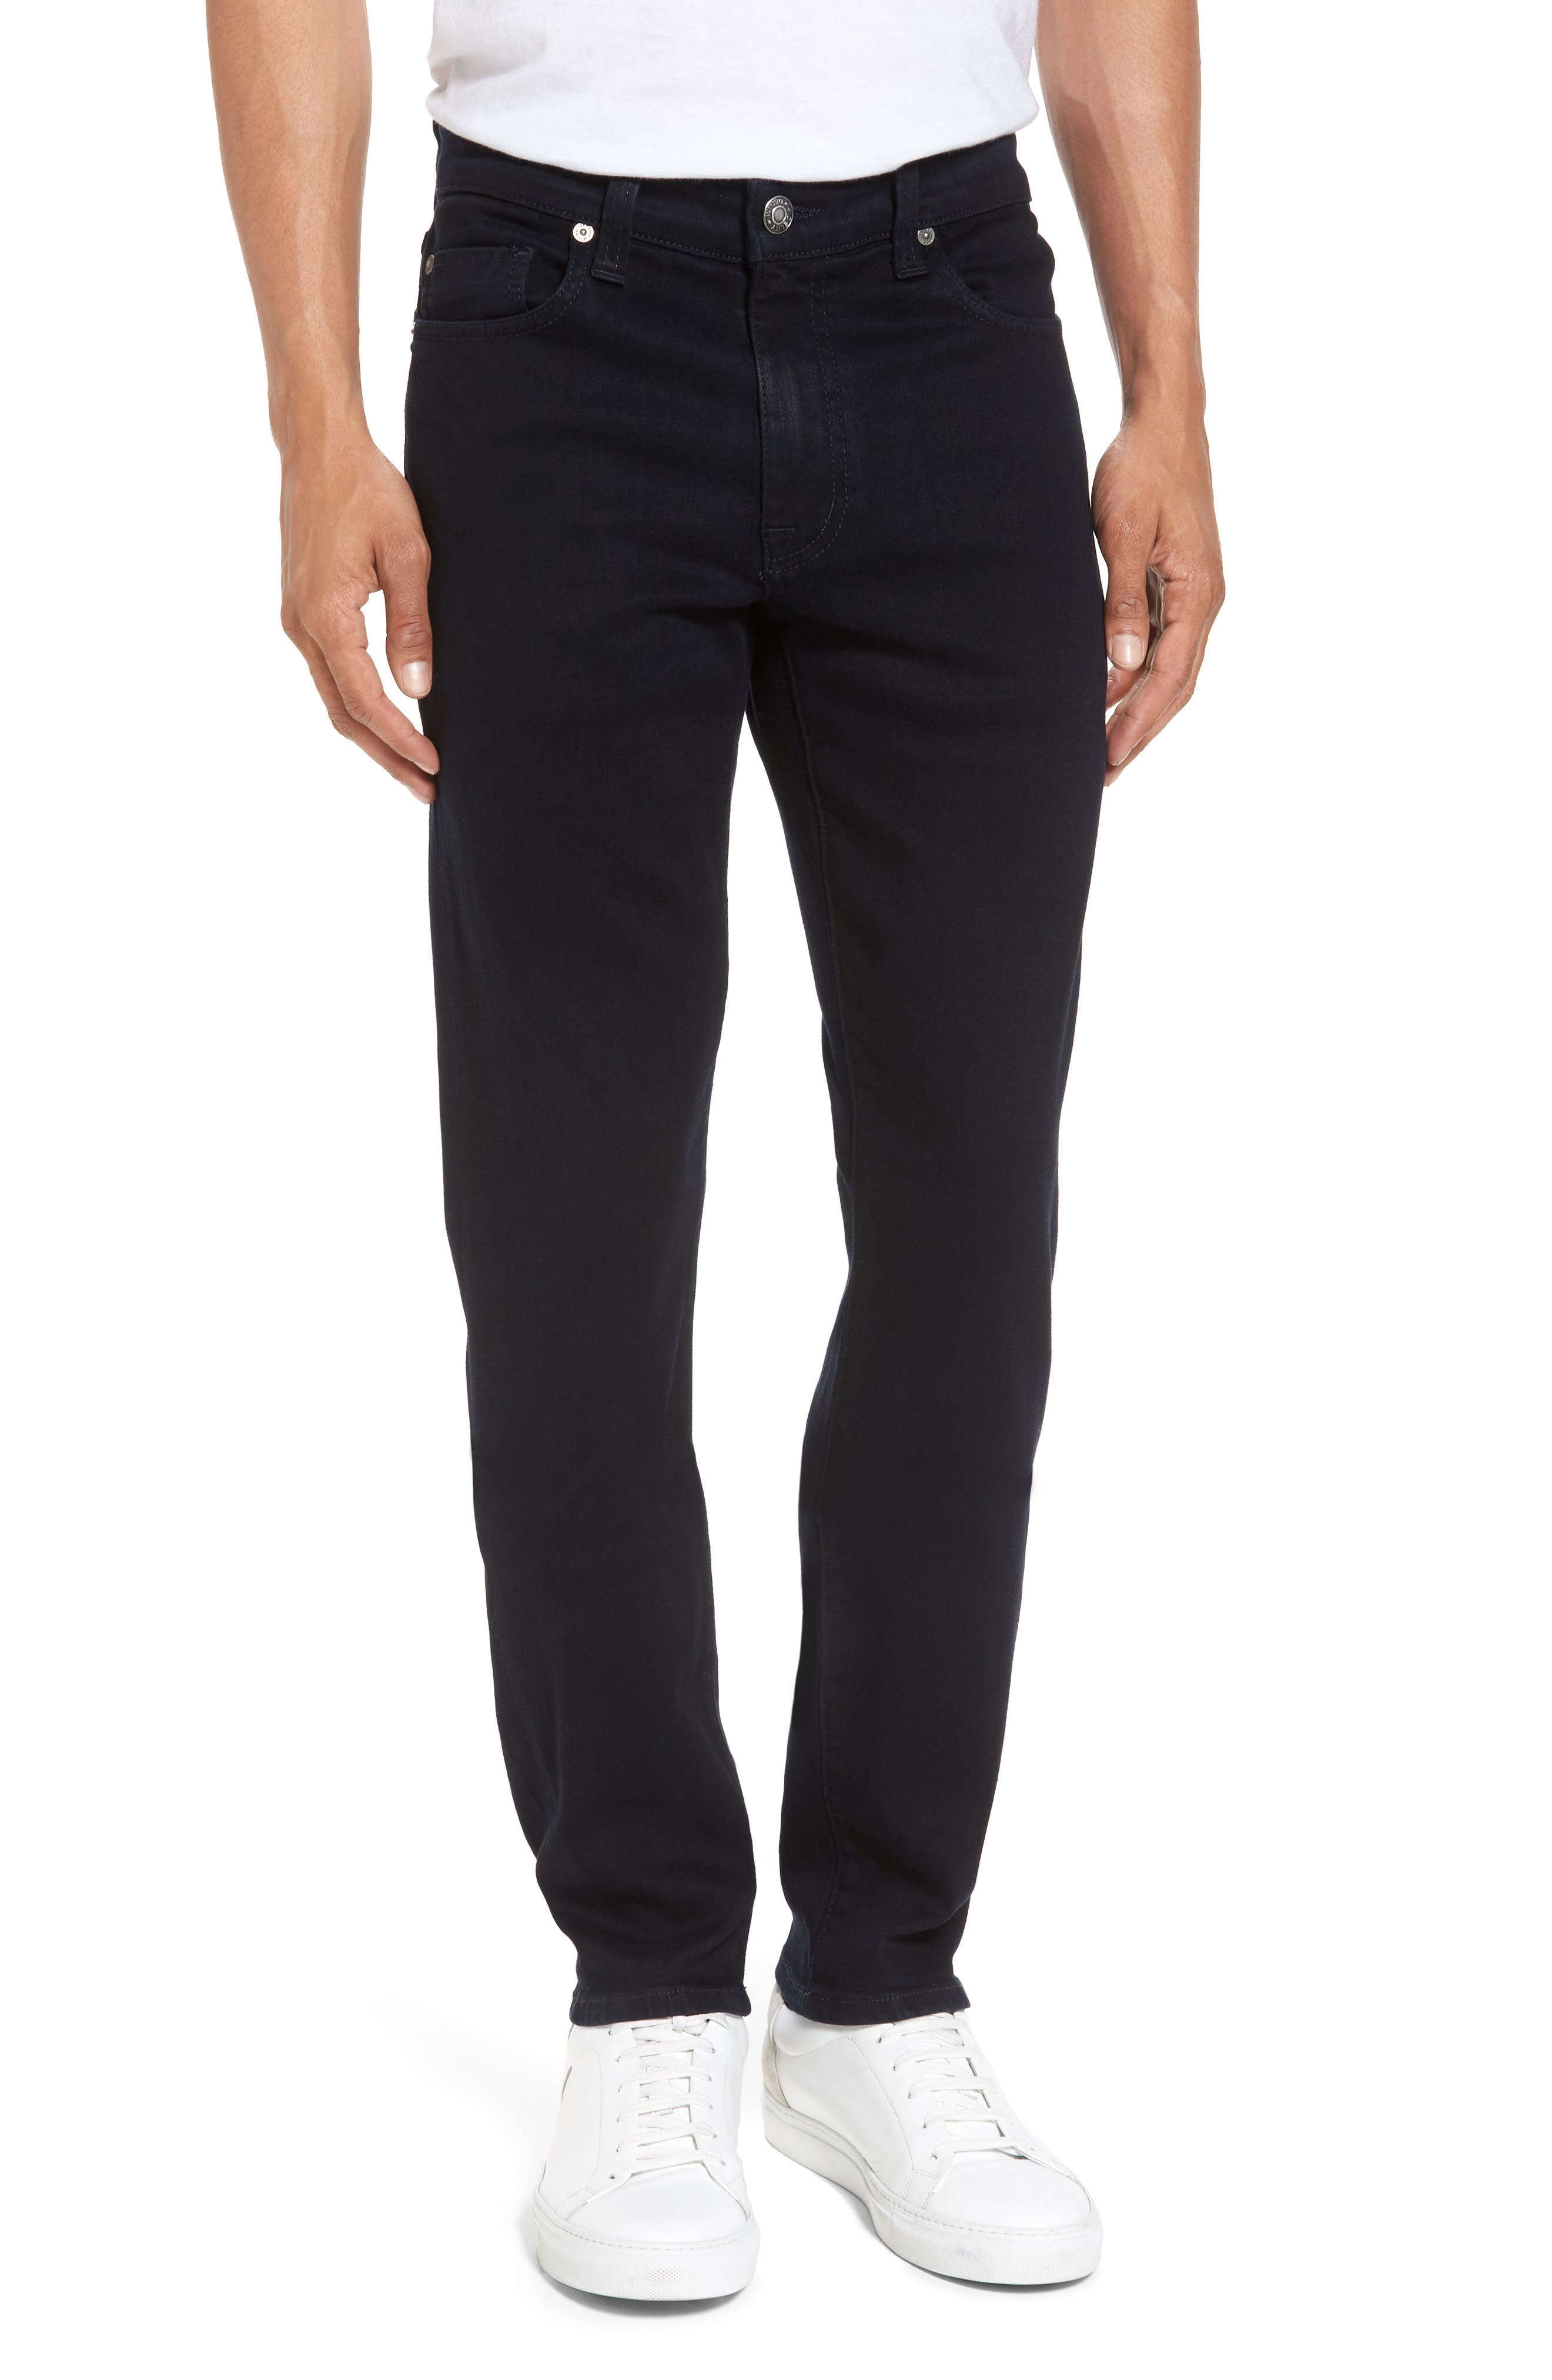 Alternate Image 1 Selected - Fidelity Denim Torino Slim Fit Jeans (Everblue)